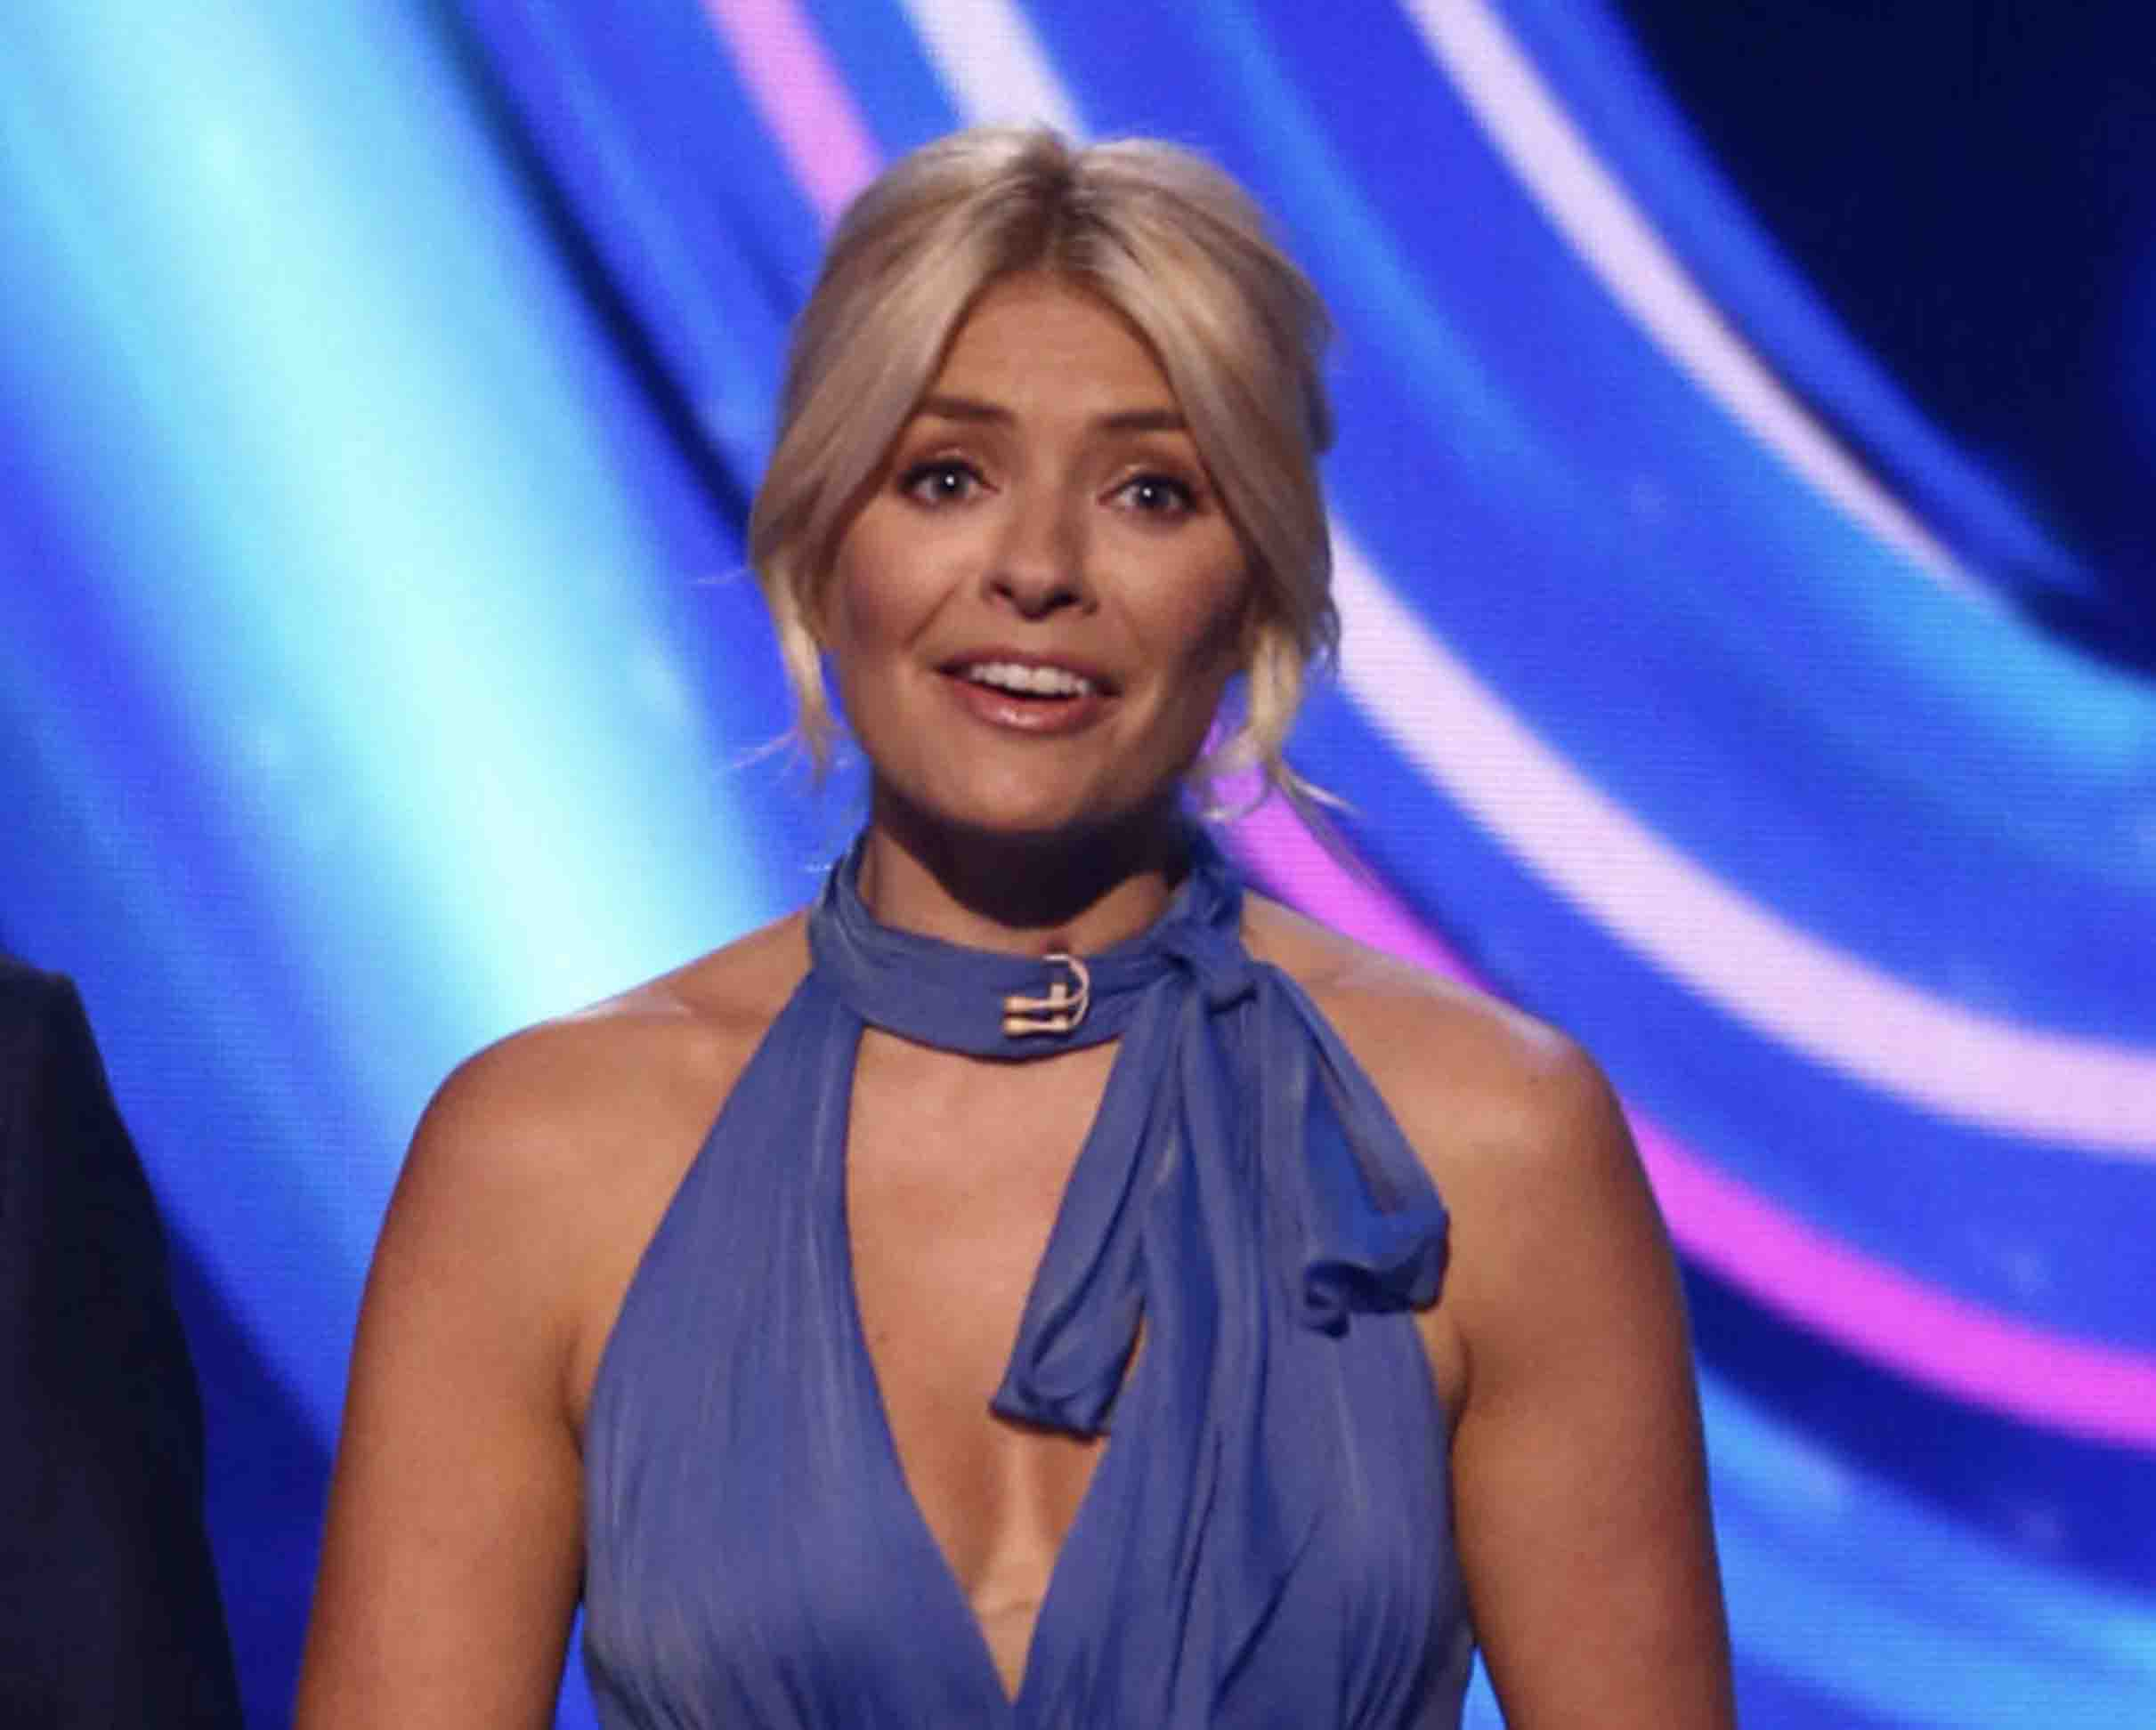 dancing on ice host holly willoughby stuffs handwarmers